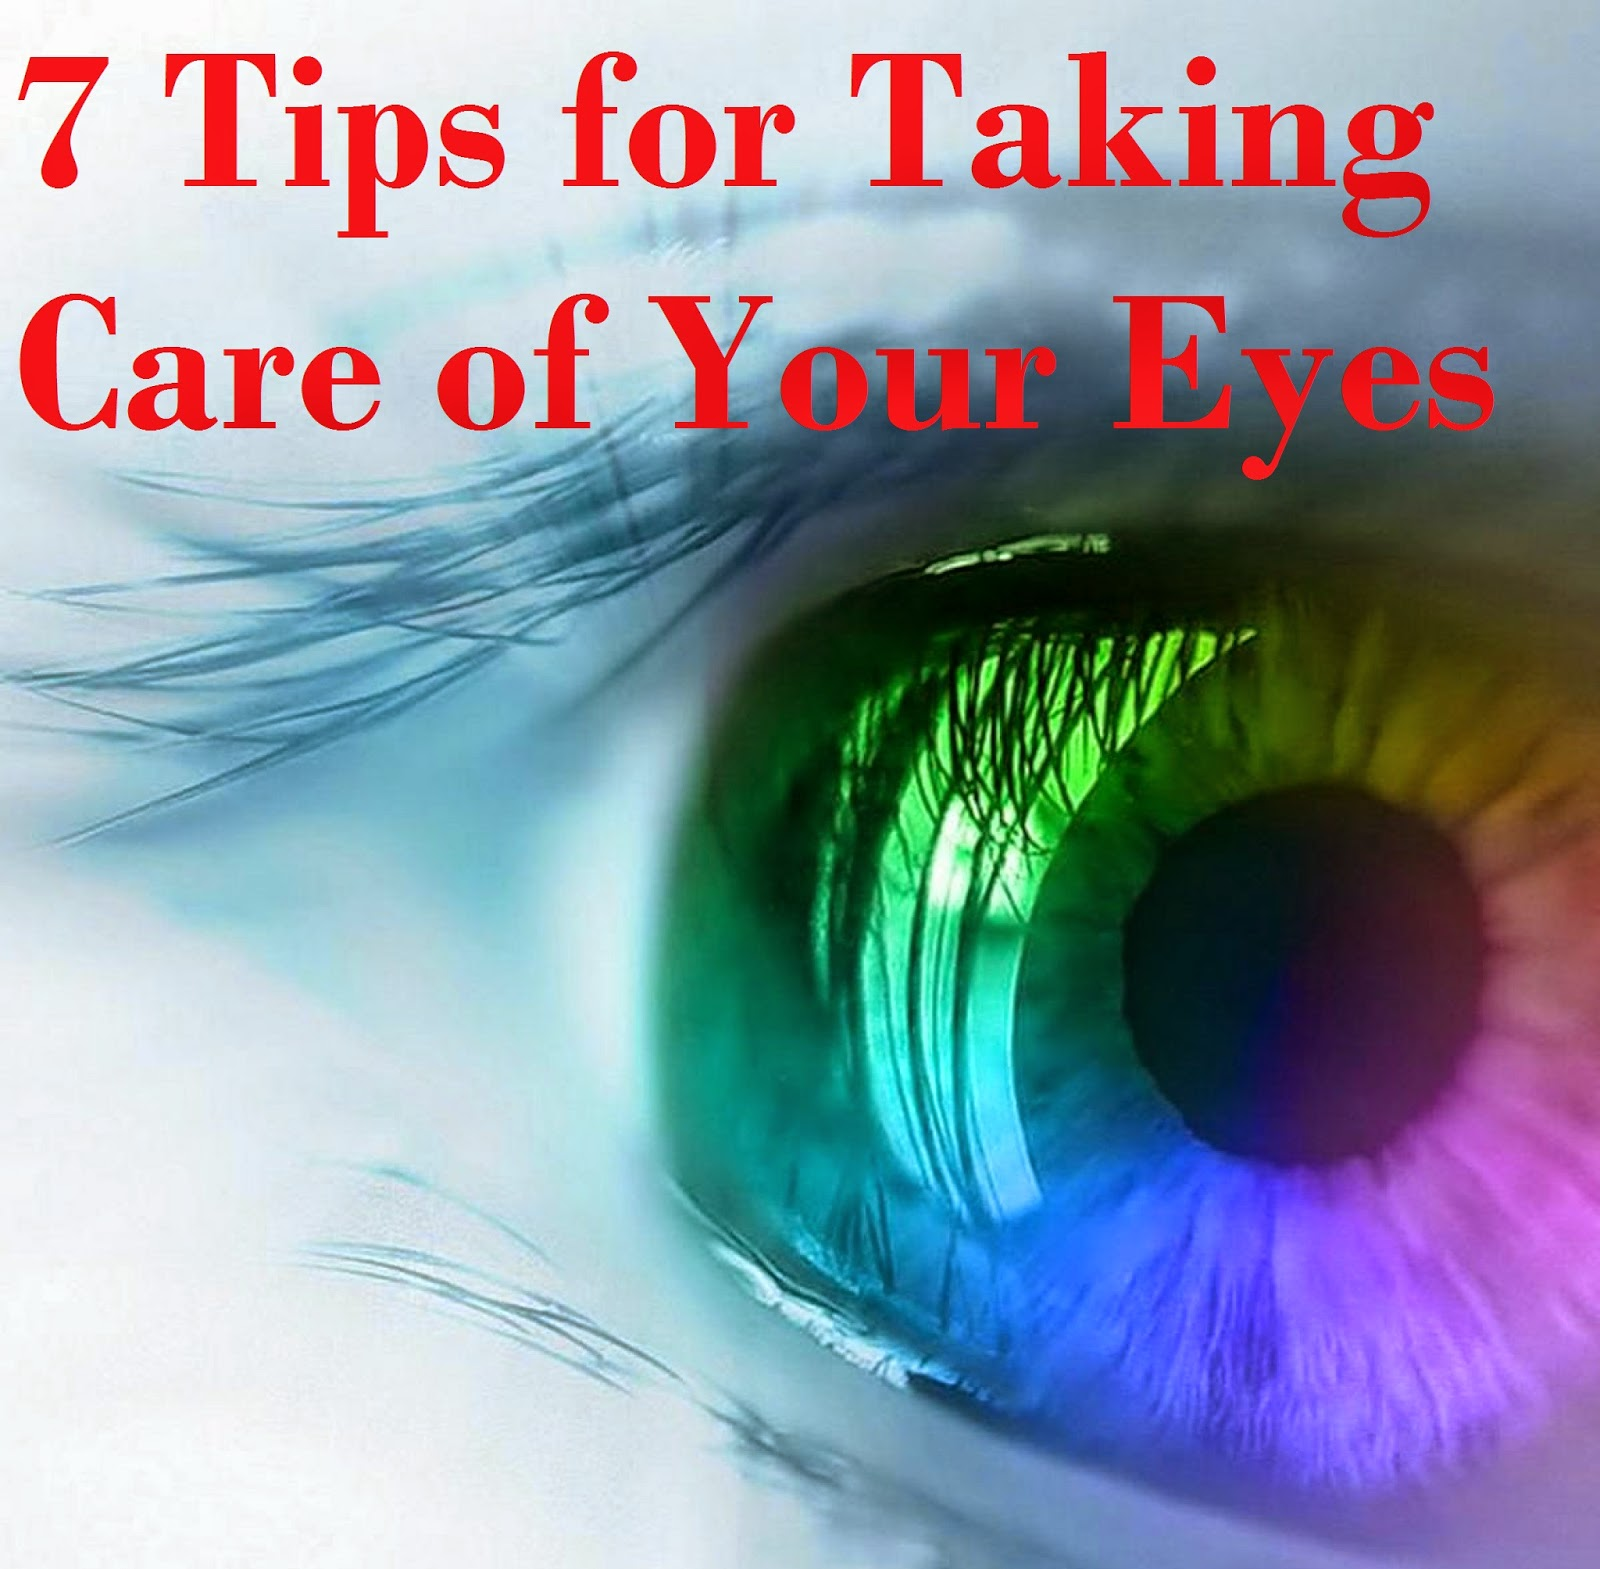 7 Tips for Taking Care of Your Eyes